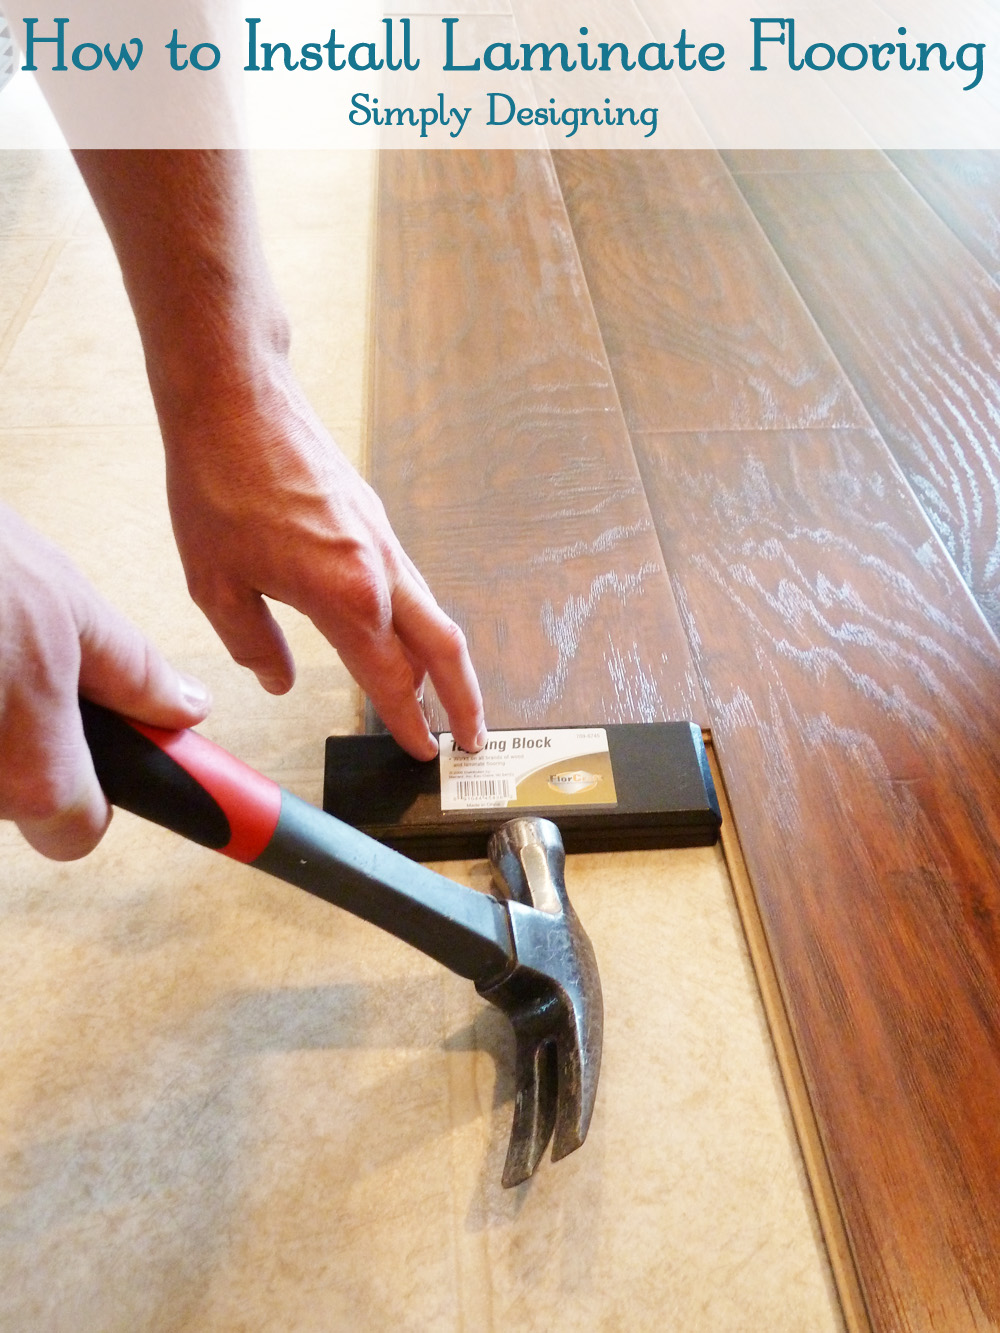 Laminate flooring what tool cuts laminate flooring for Floor installers